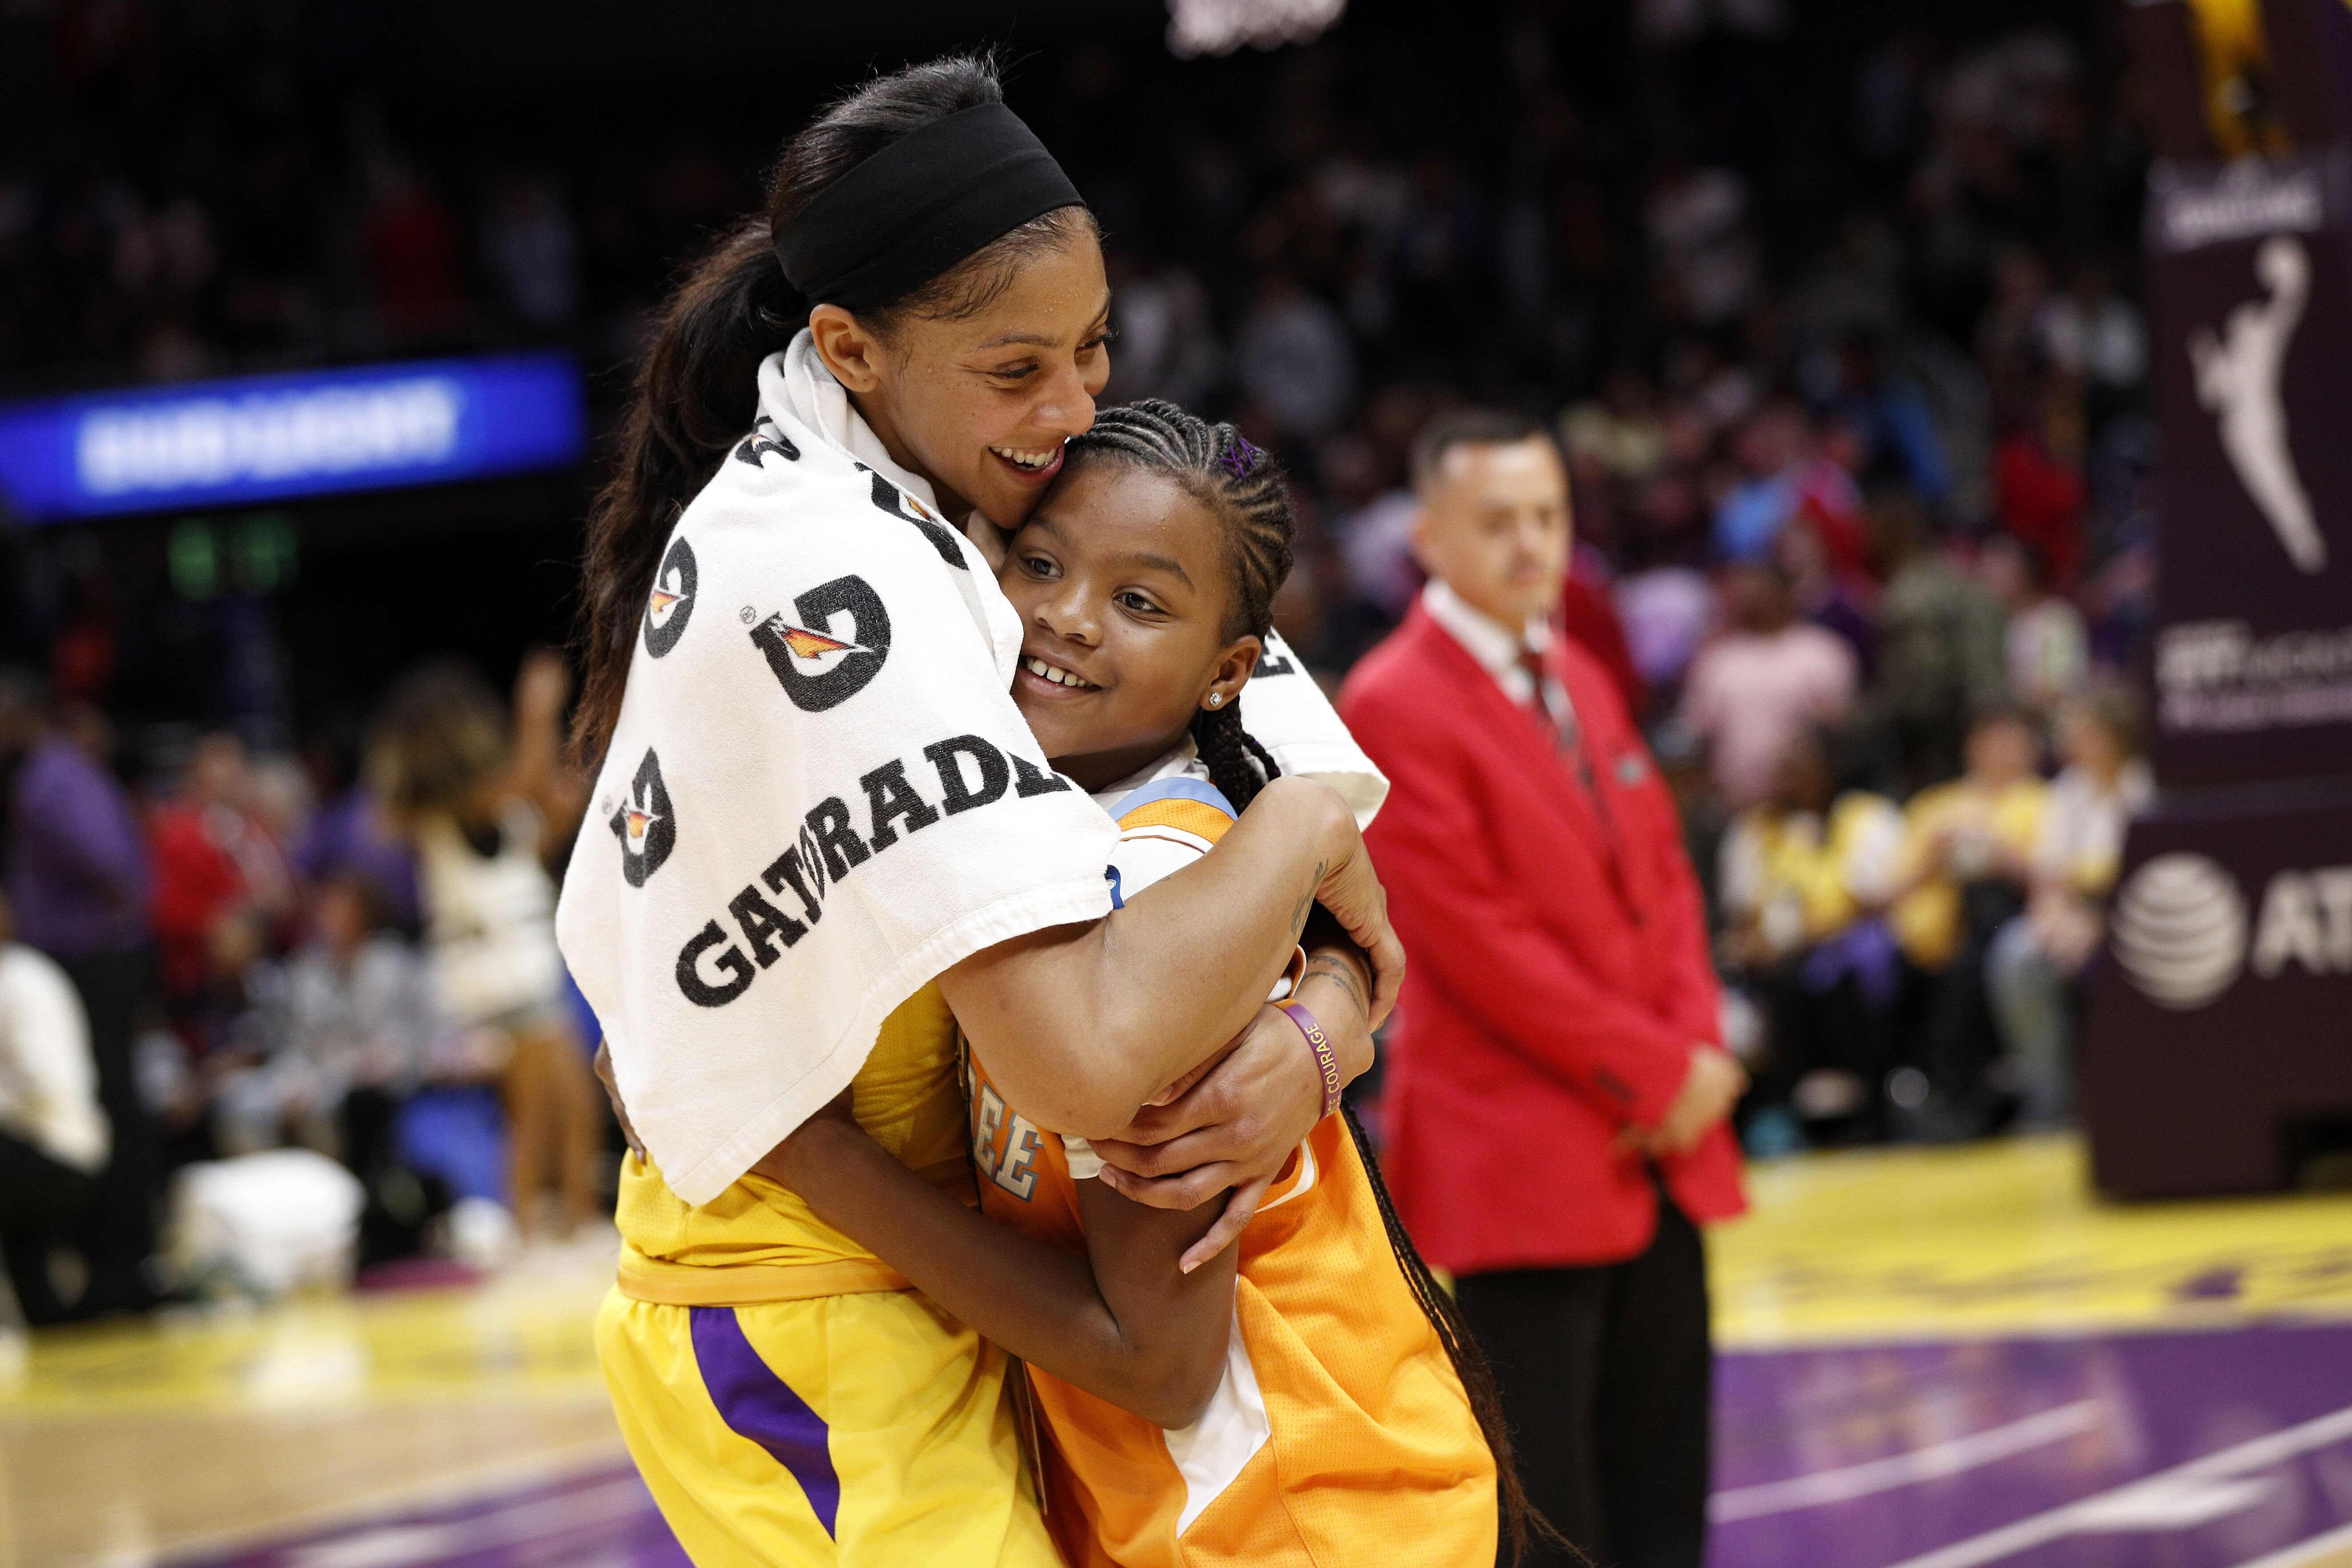 Candace Parkerhugs her daughter, Lailaa Nicole Williams, after winning the game against the Phoenix Mercury in 2019 | Source: Getty Images